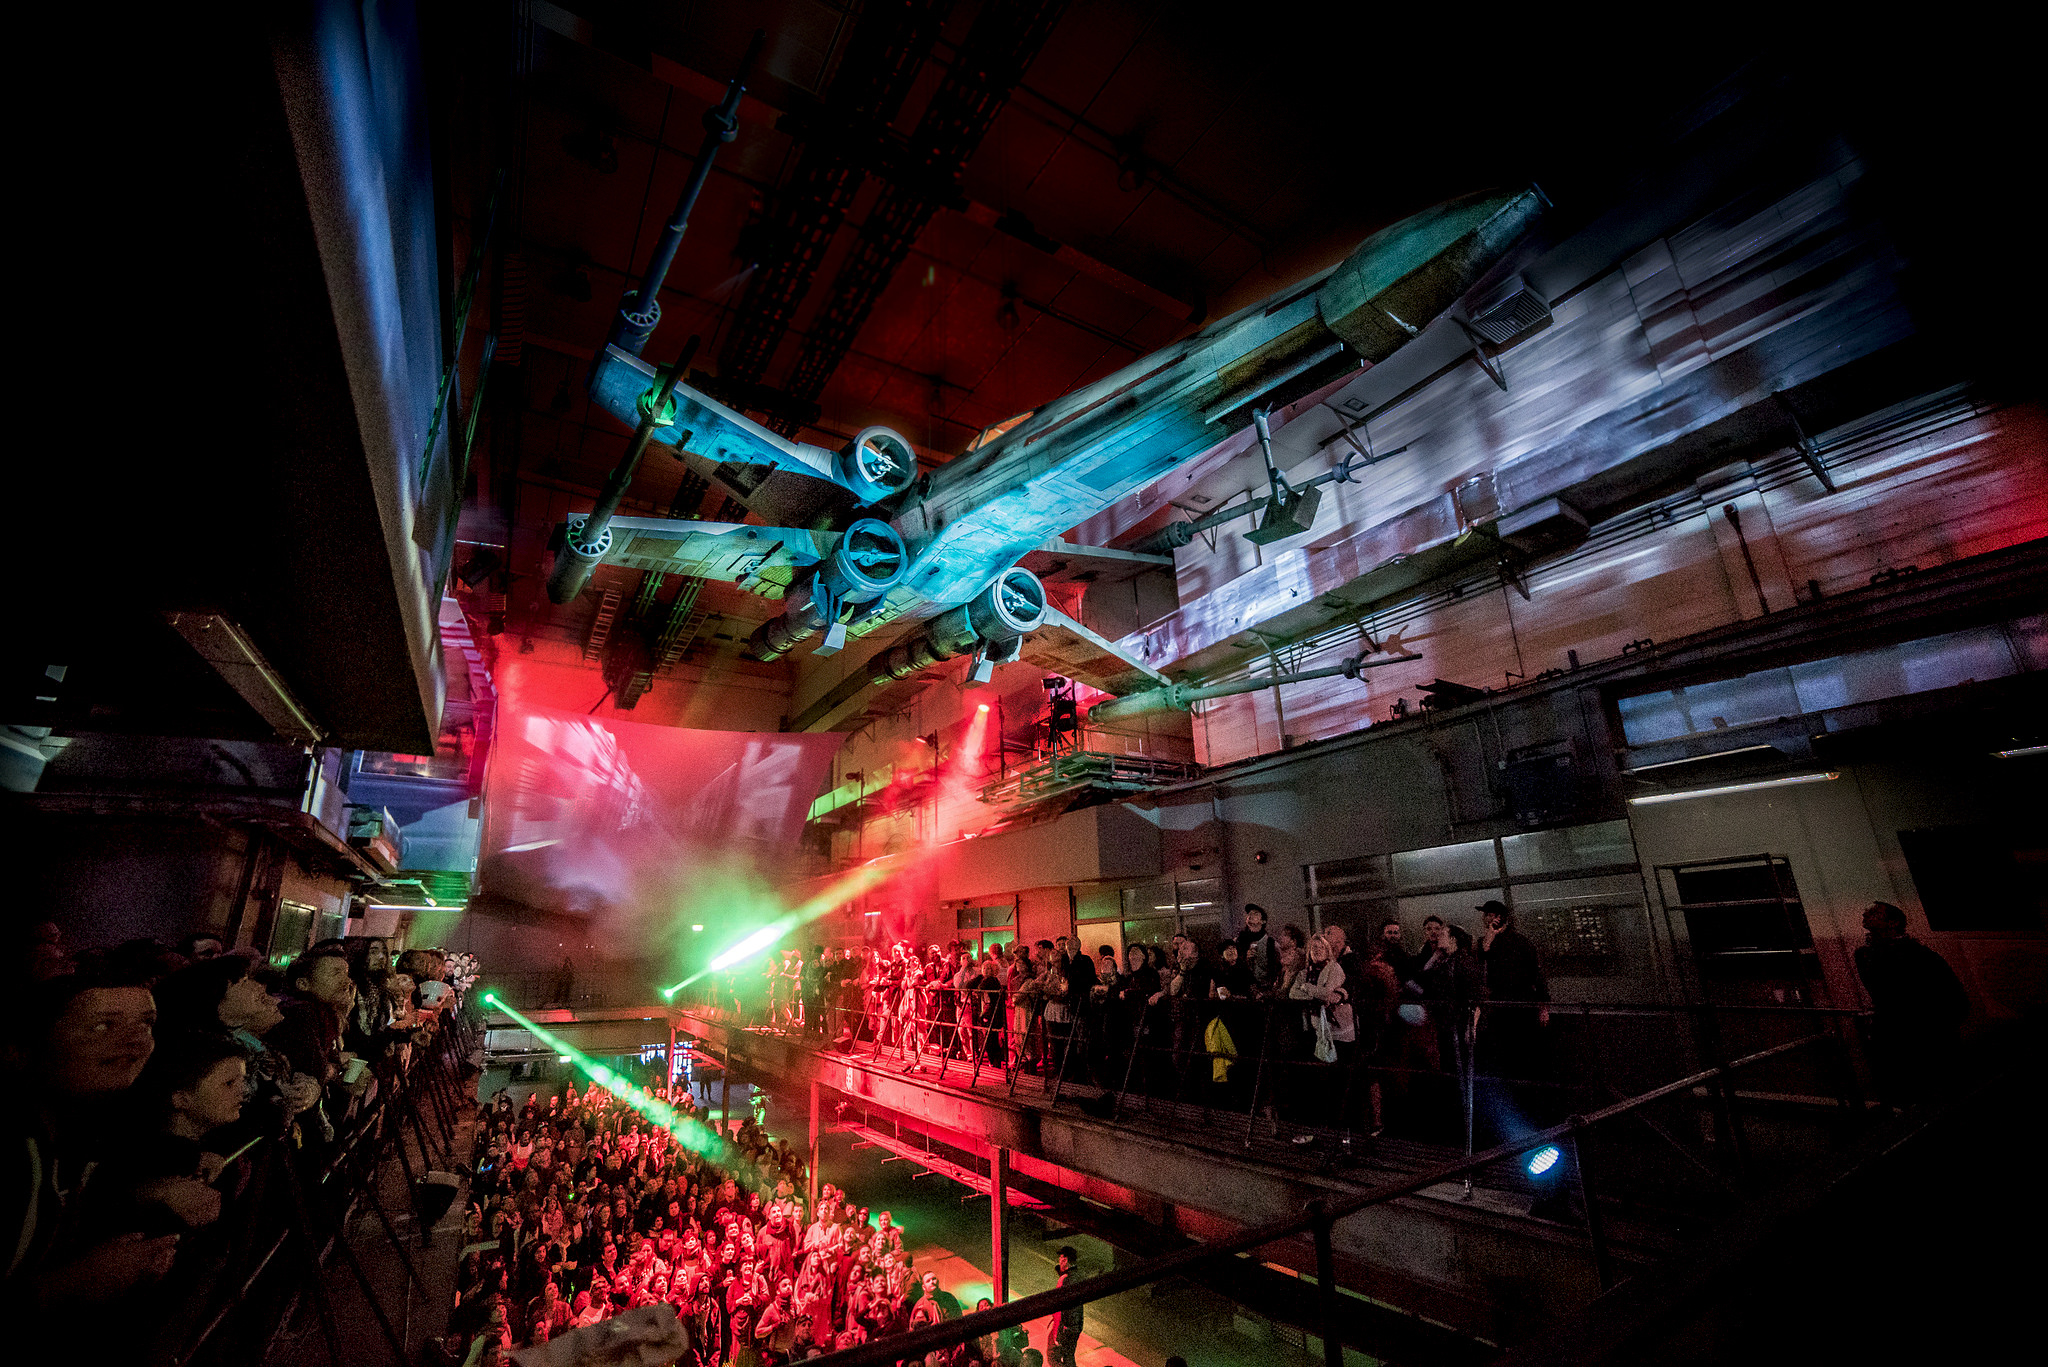 Secret Cinema signs deal with Disney for immersive film productions